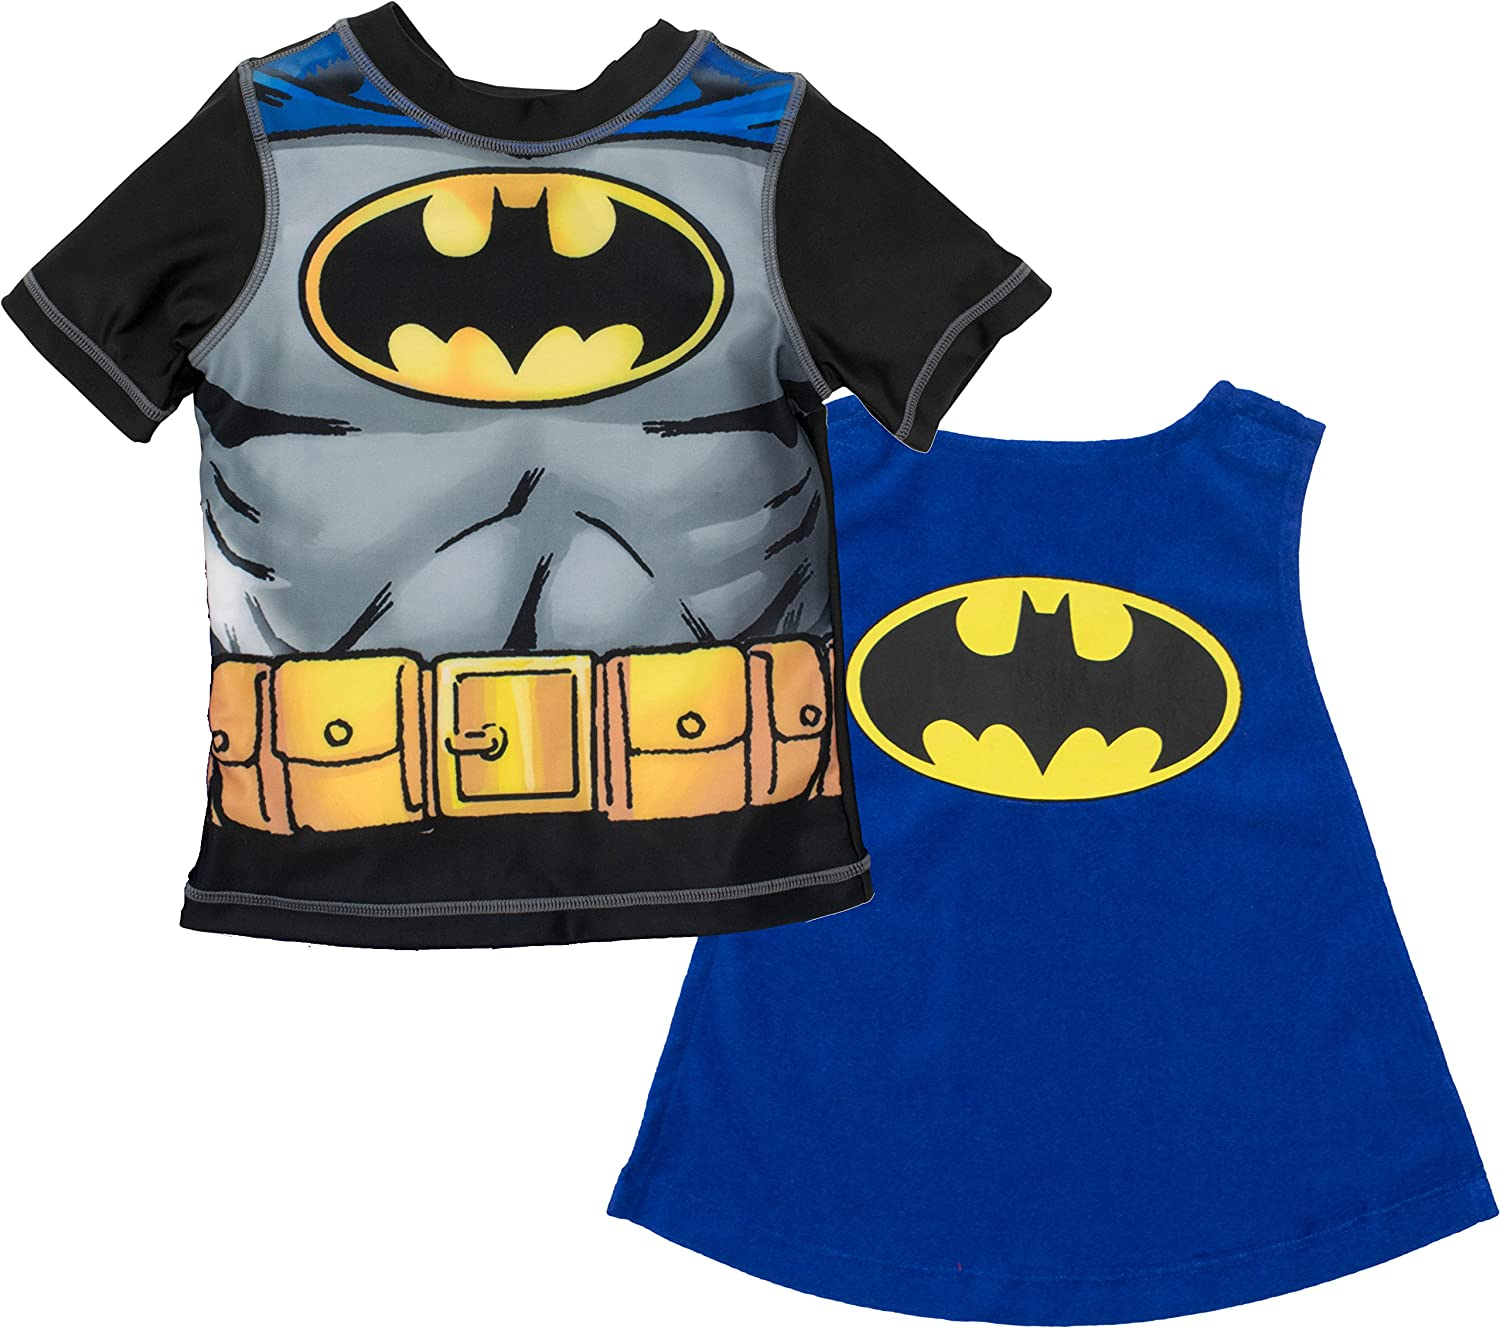 Batman Birthday Shirt With Cape